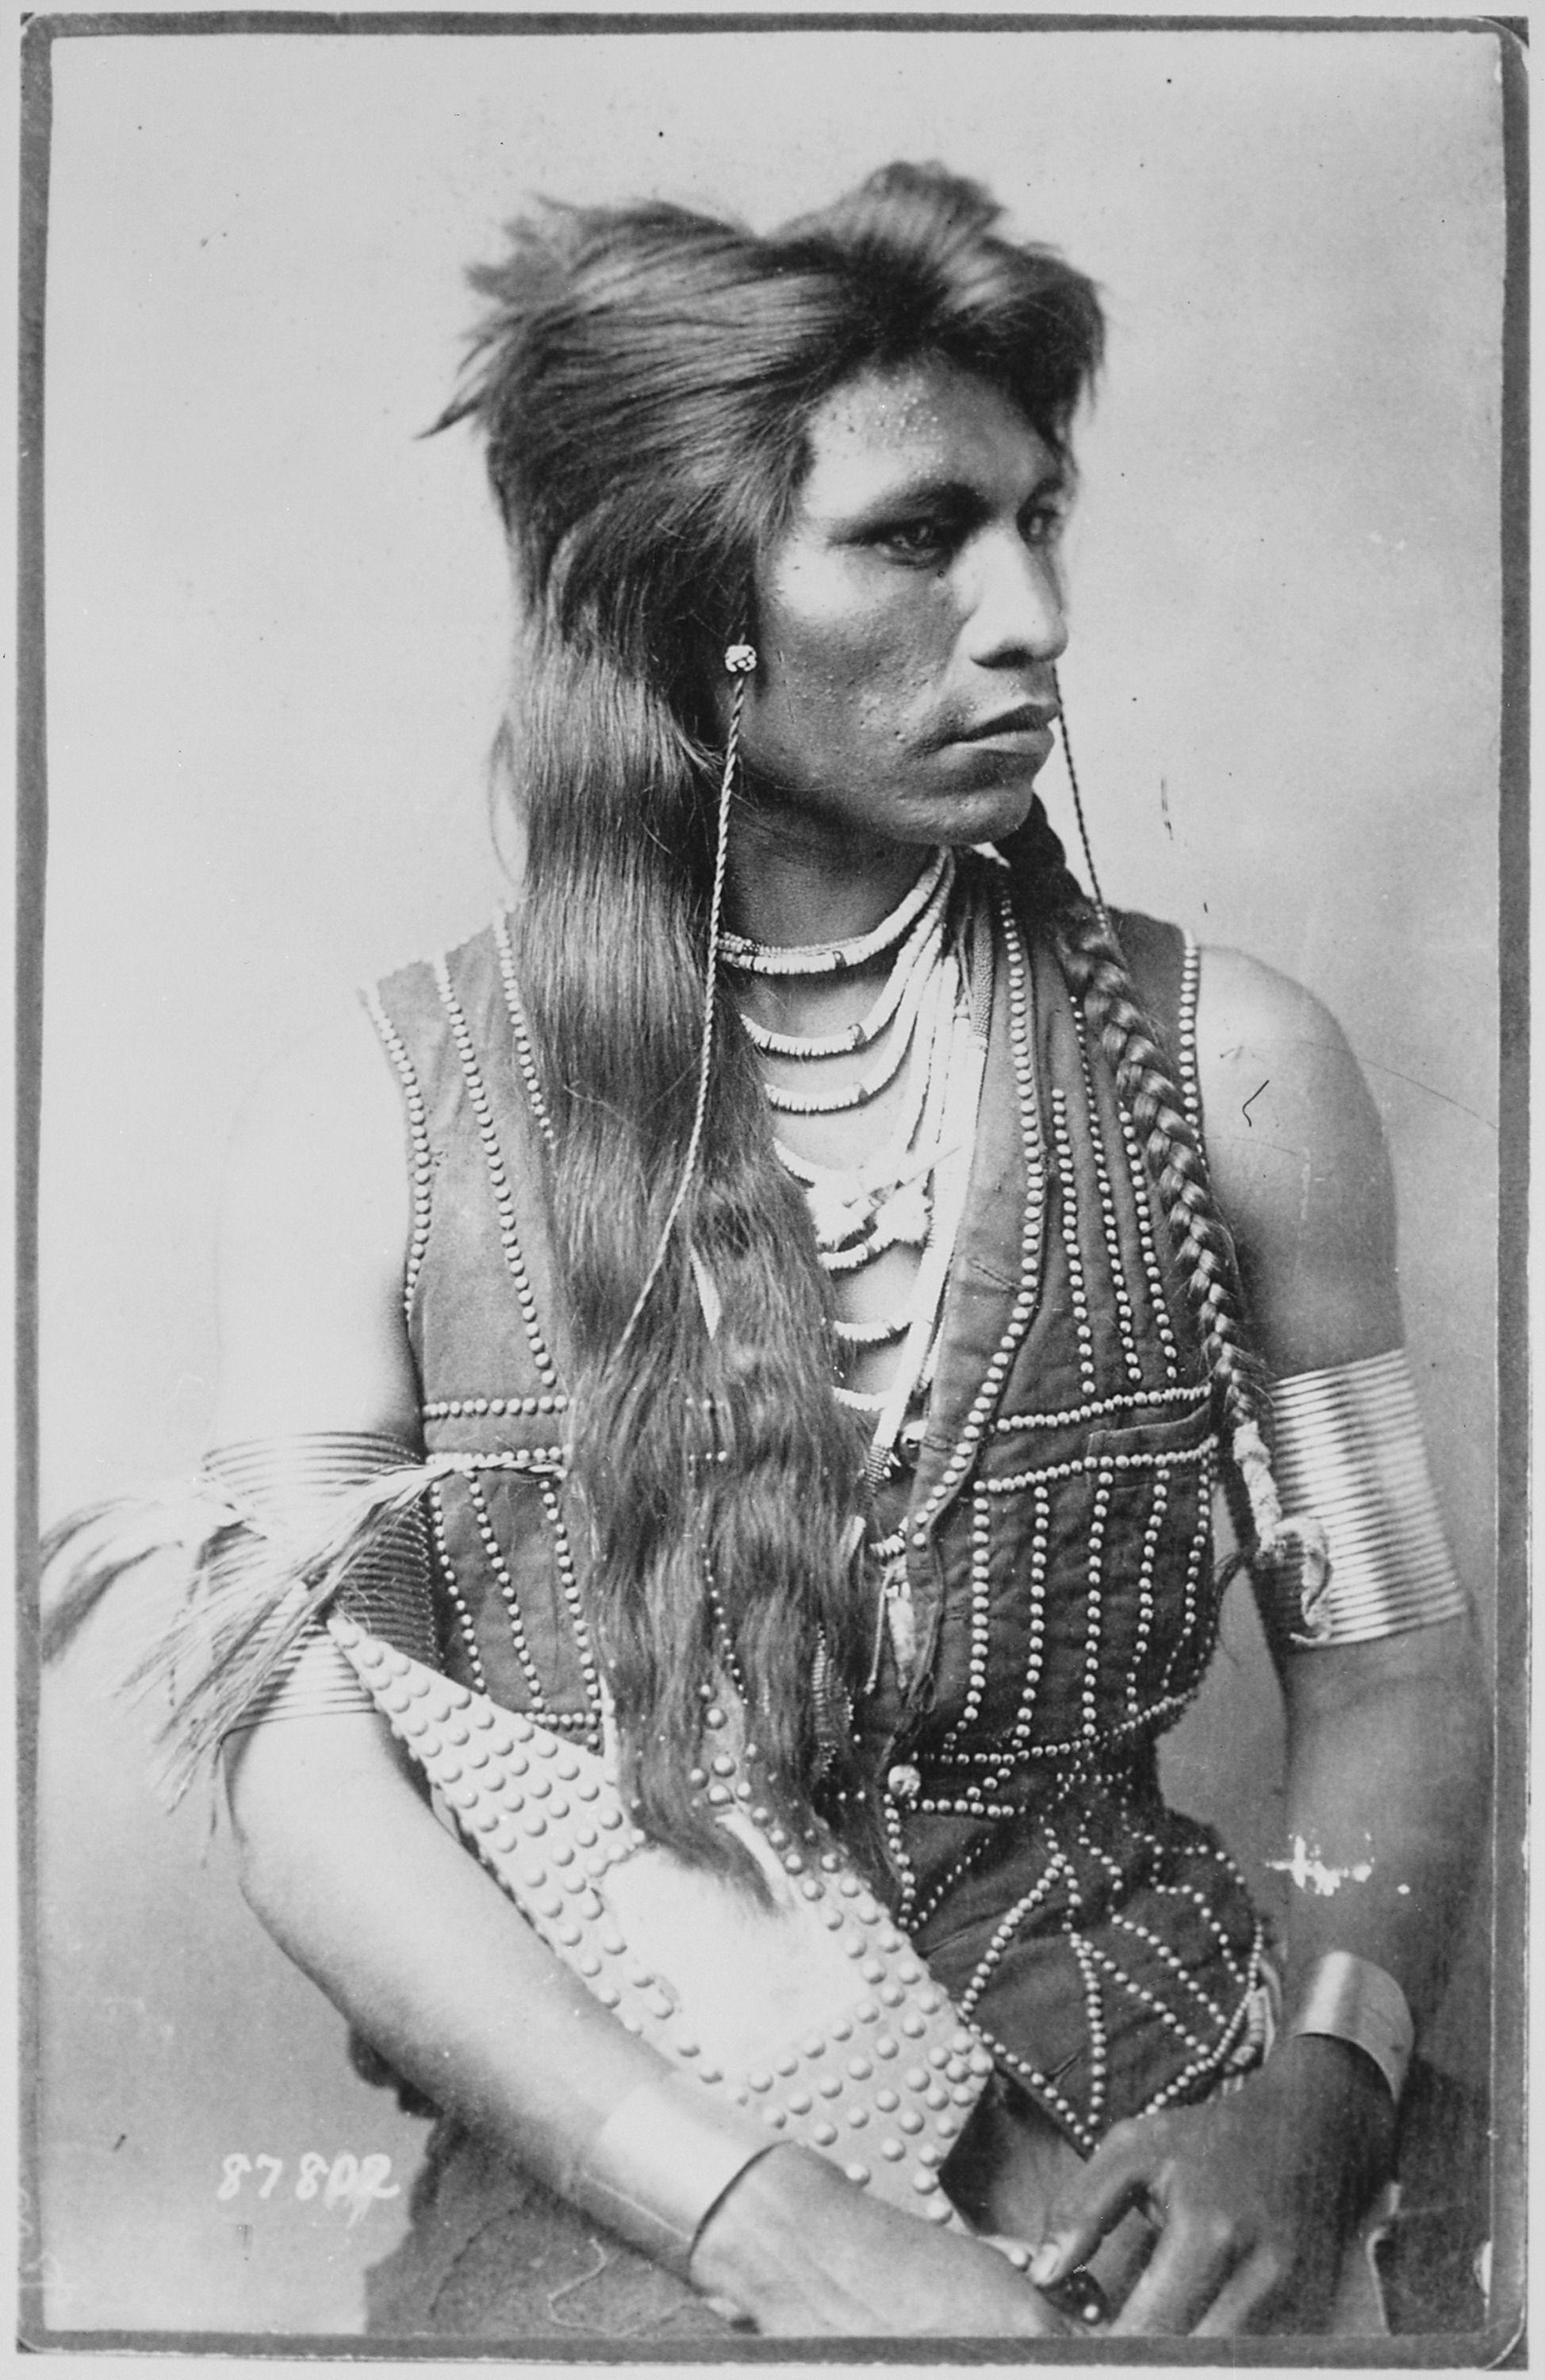 Rabbit Tail, a member of the Shoshone tribe who worked as a US Army scout, ca. 1895.jpg